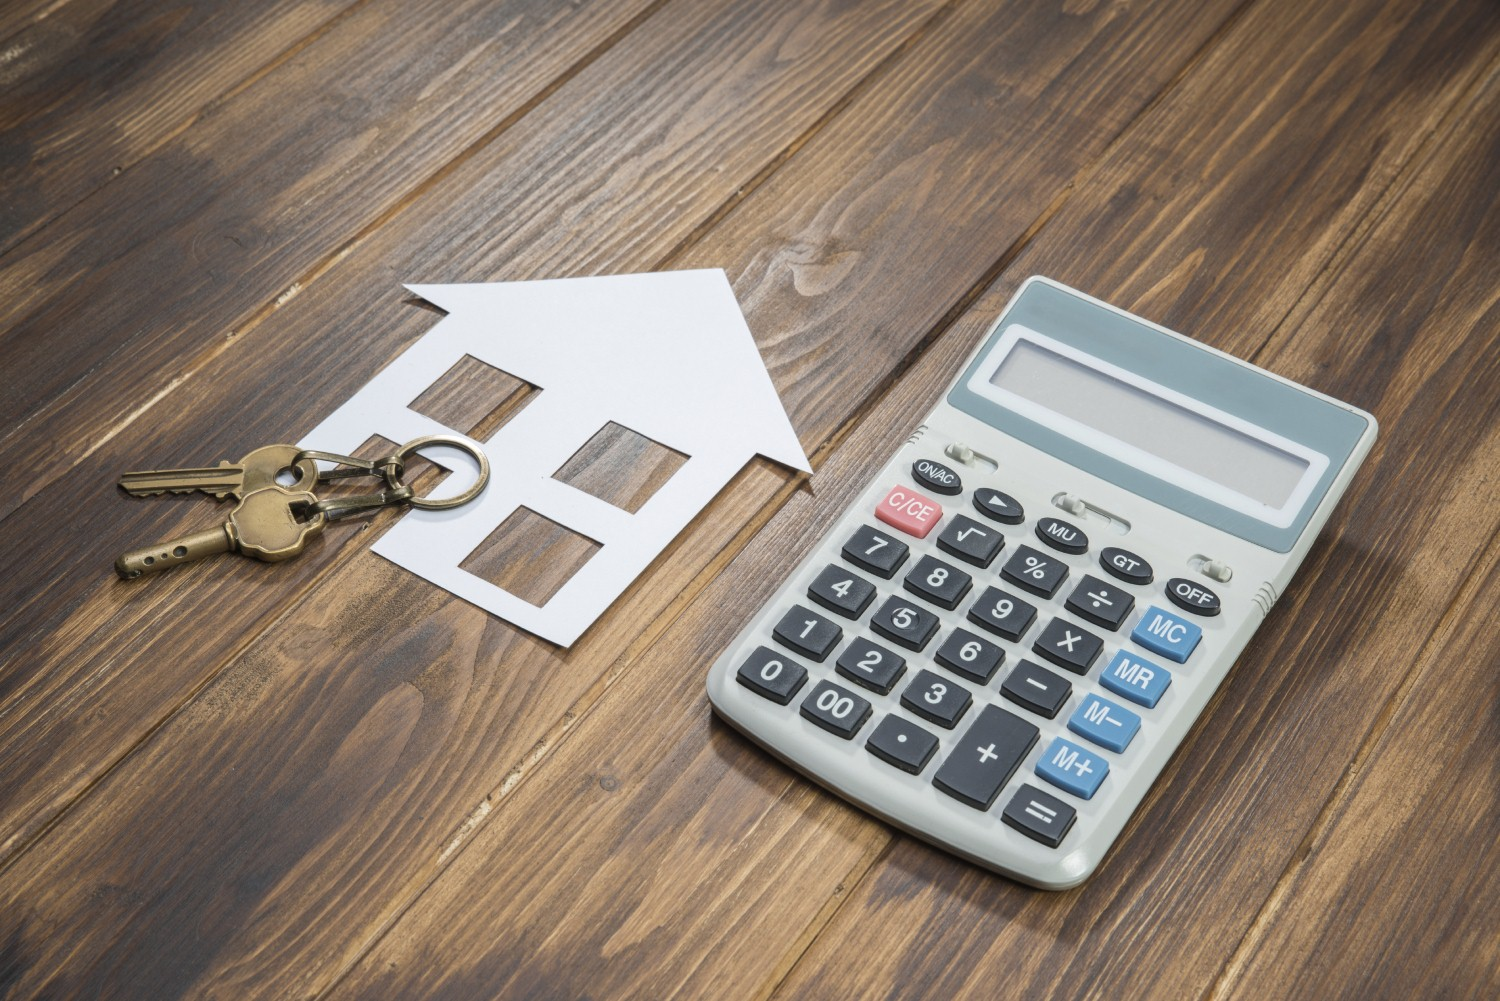 Mortgage market in the UK expected to have strongest post-recession year [Photo: PRImageFactory via iStock]